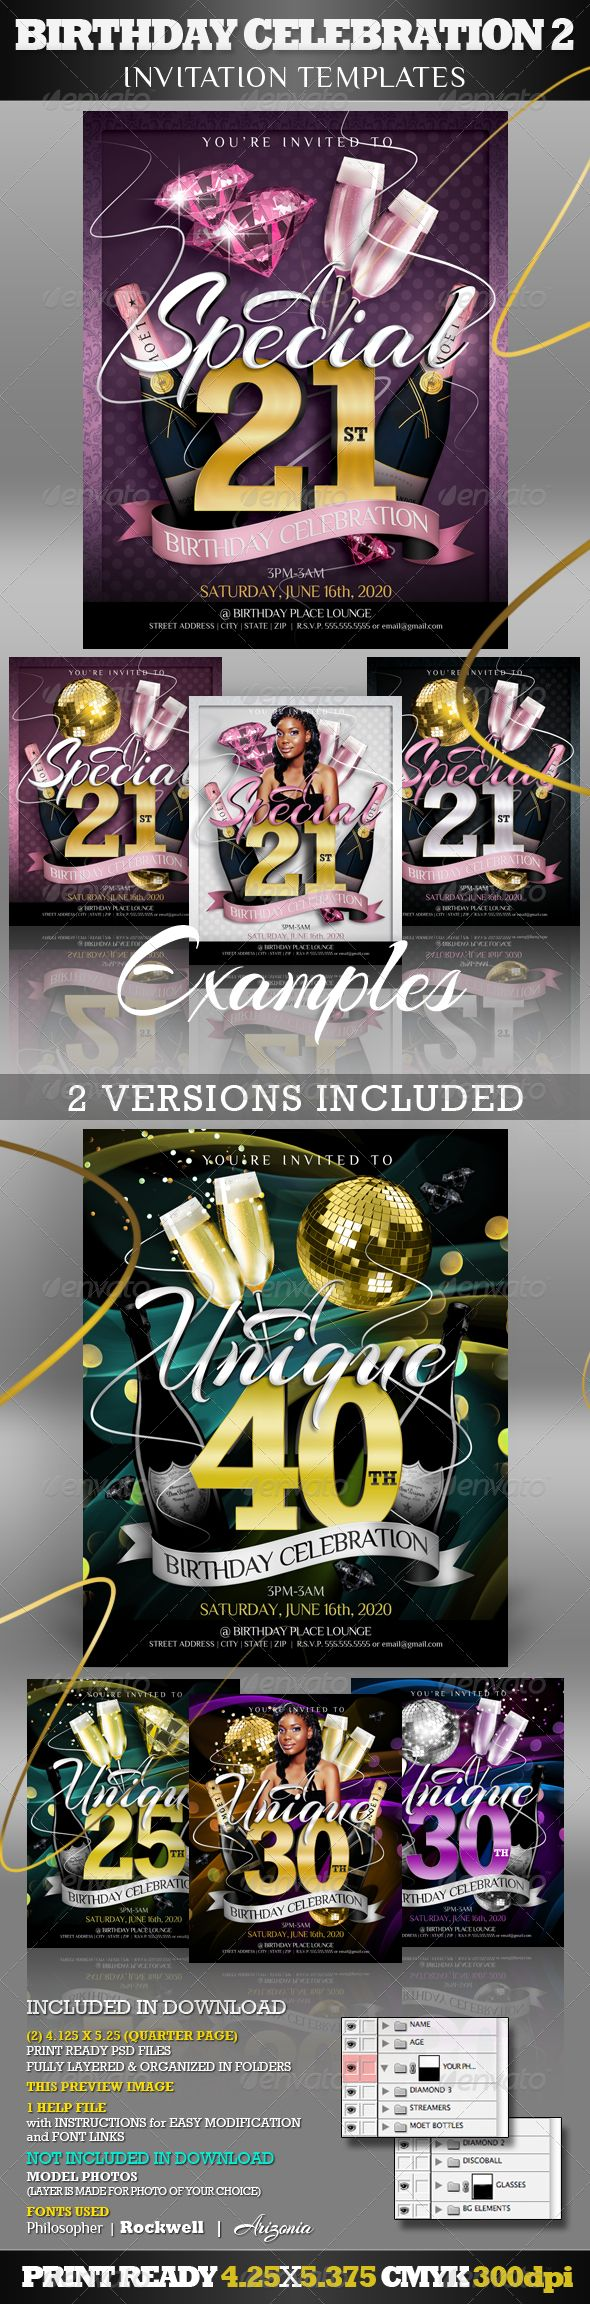 Birthday Invitation Templates 2 Club Flyer Style – Birthday Invitation Flyer Template